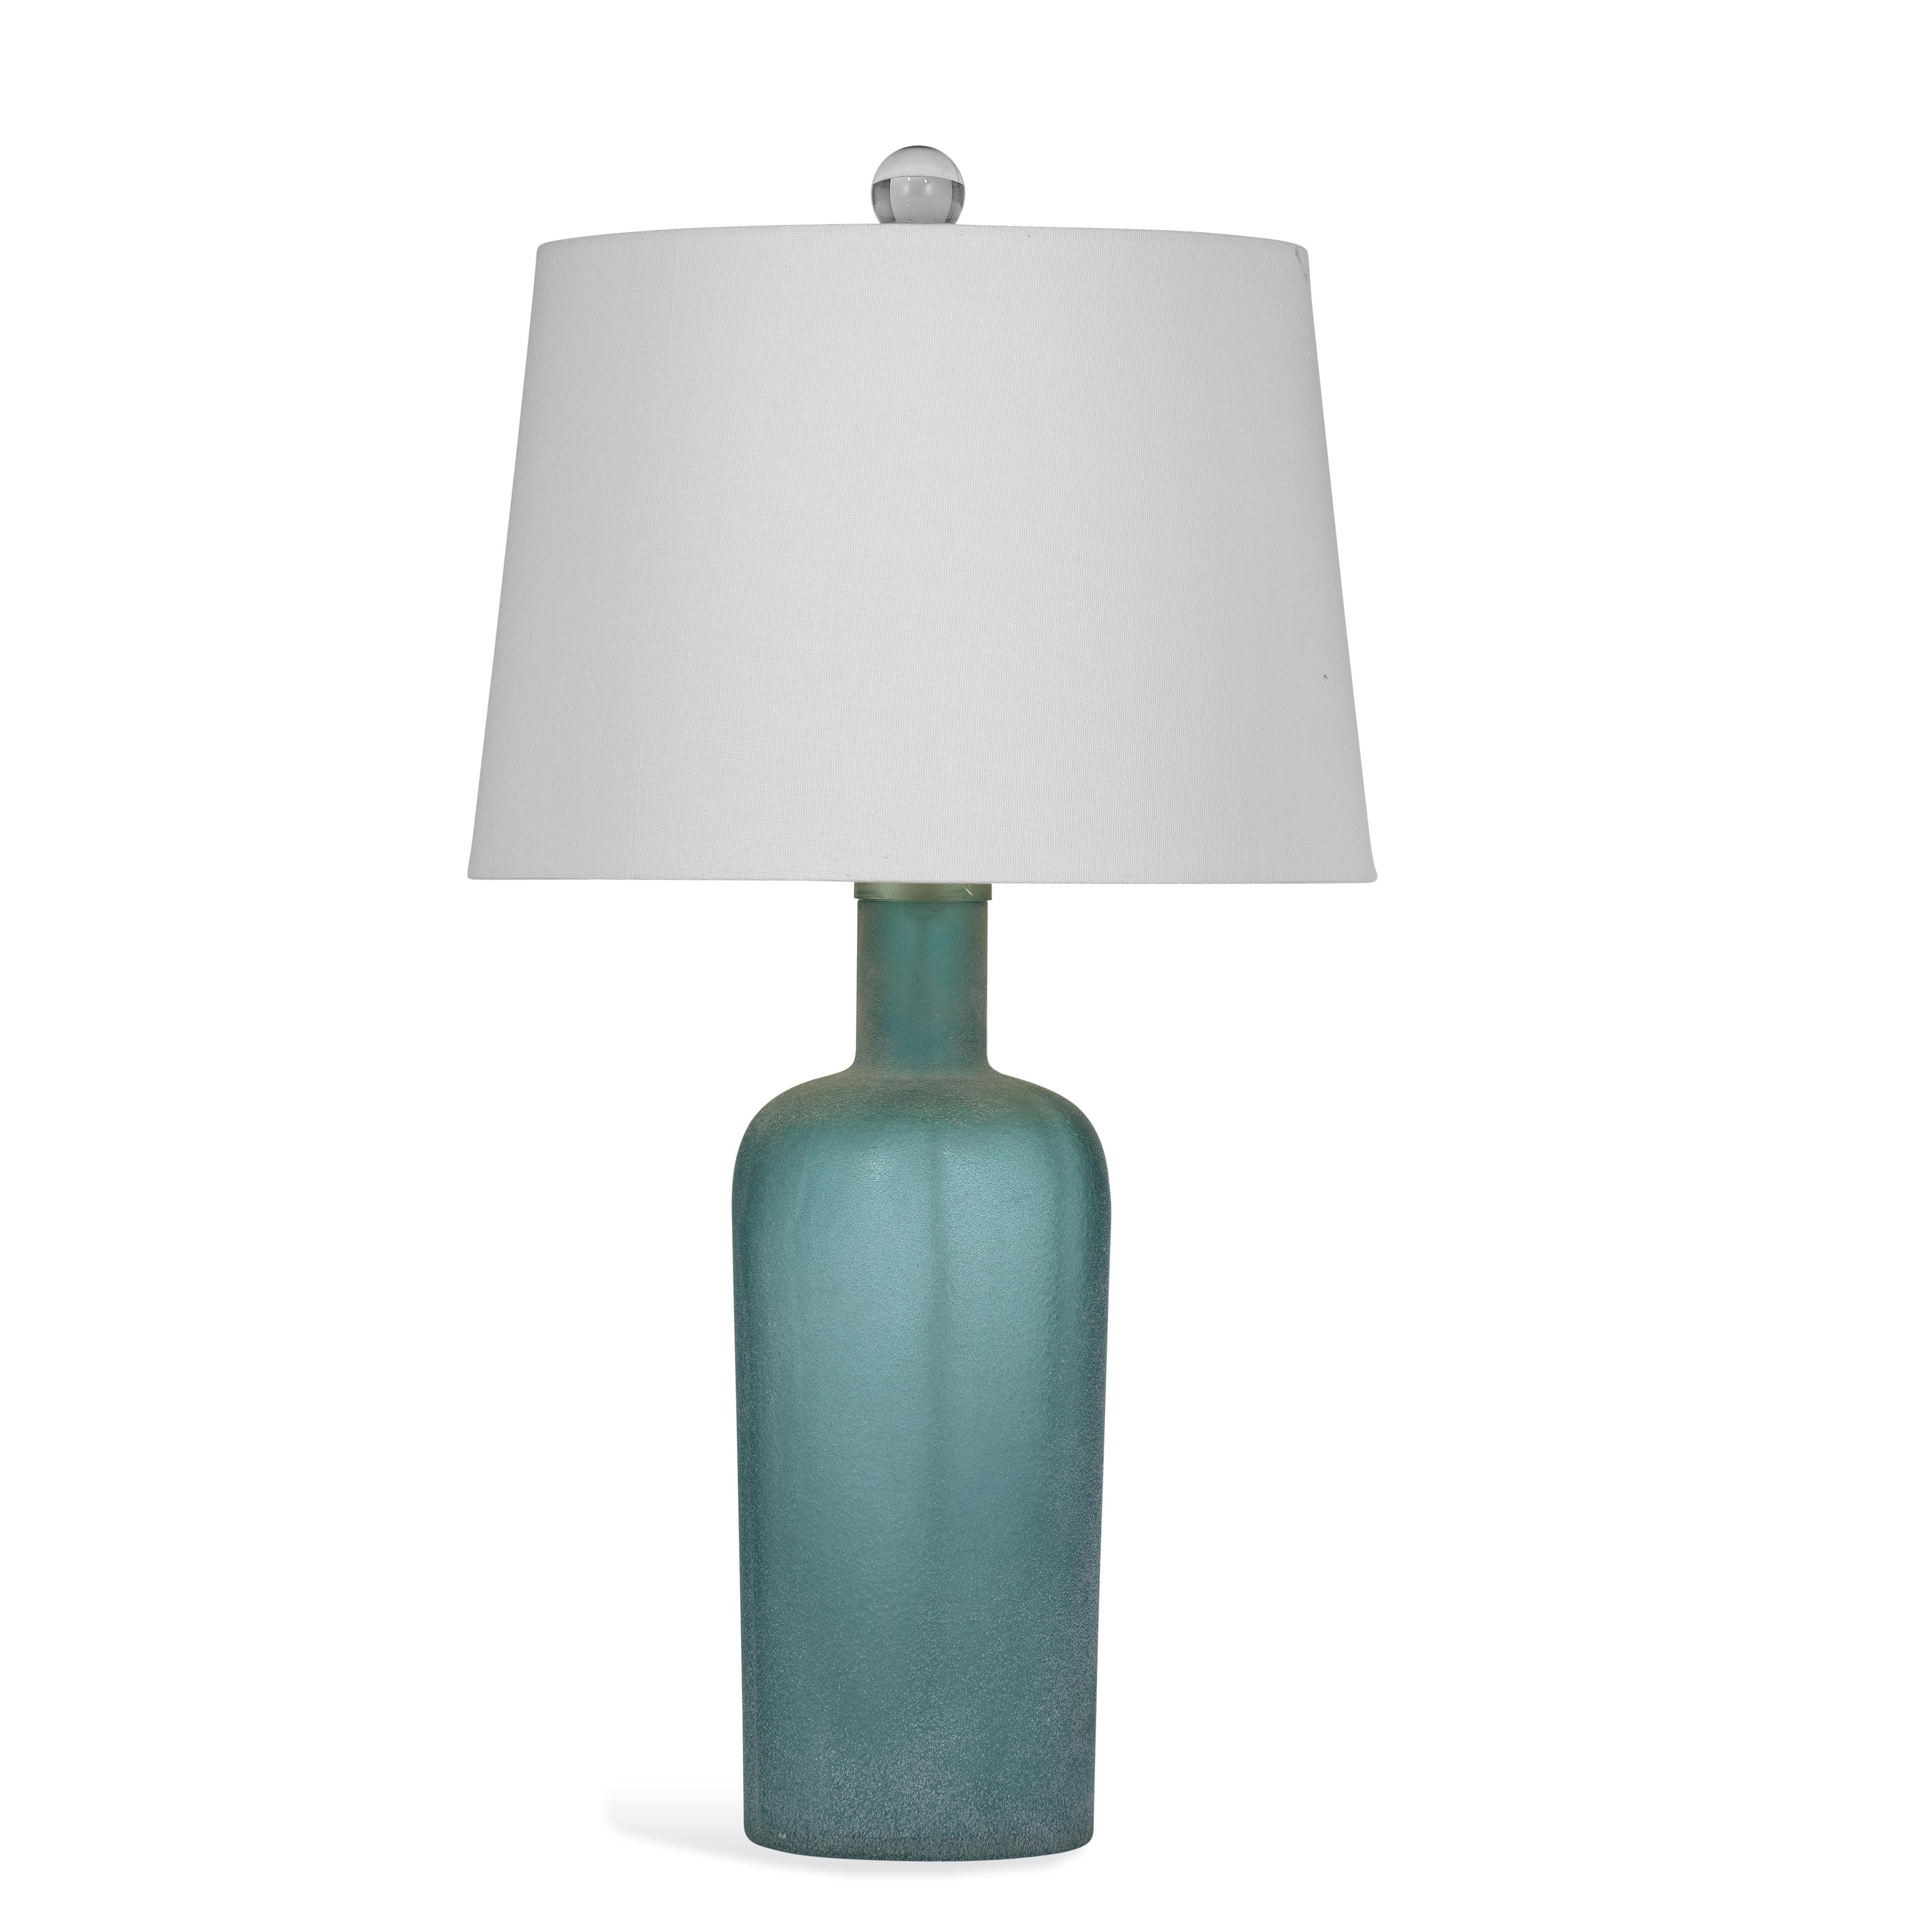 Sumter Table Lamp